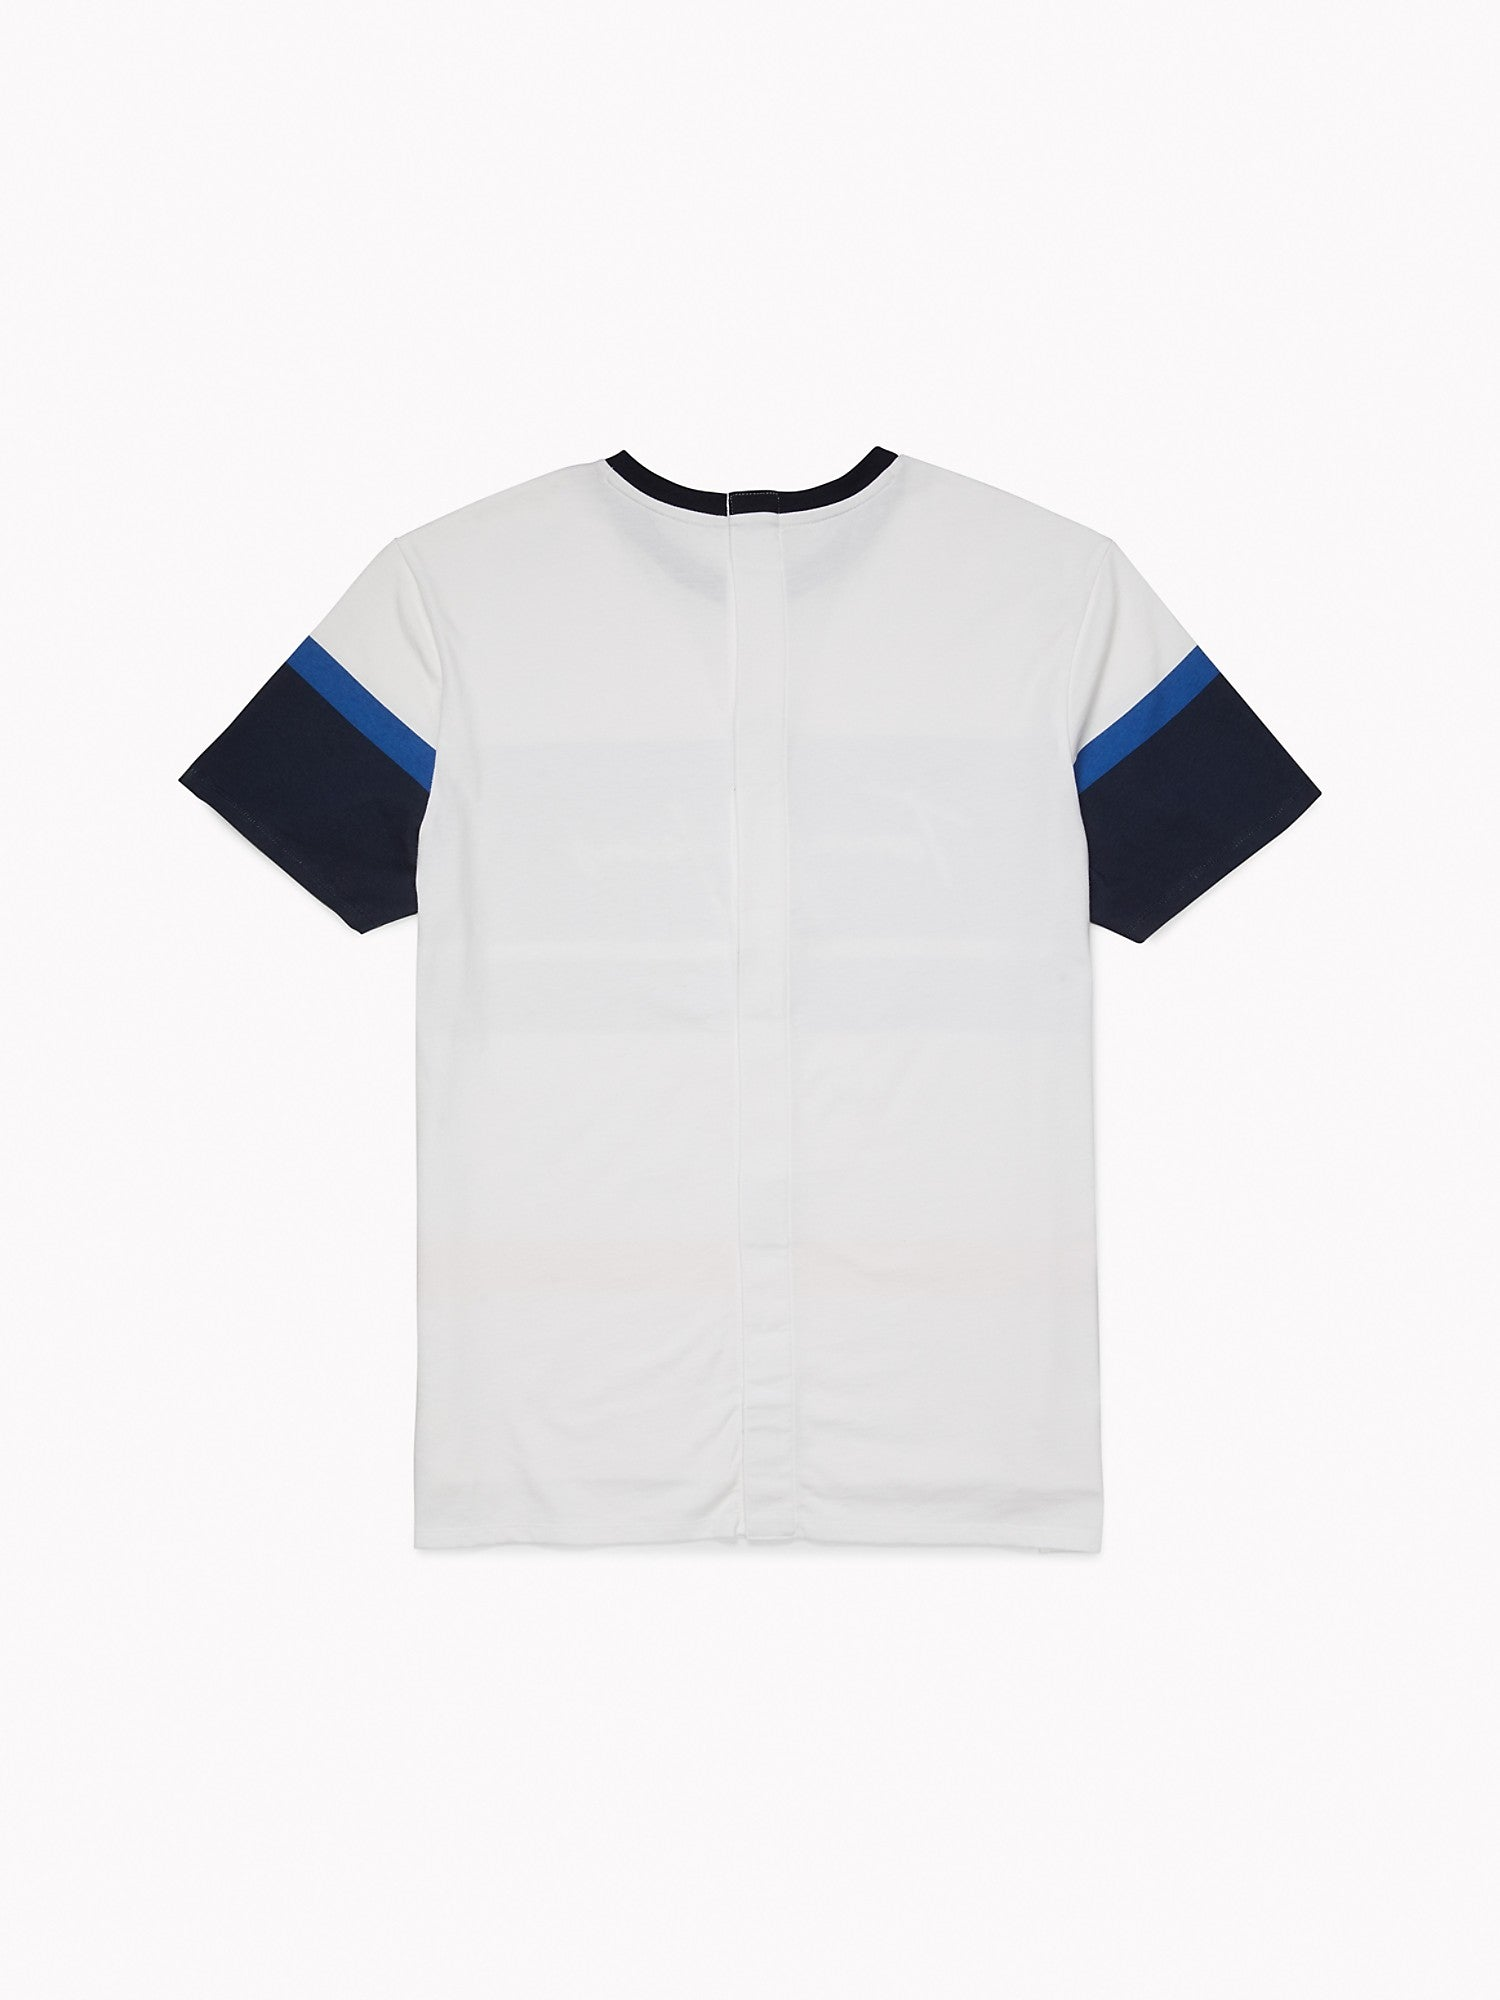 Seated Benny Tee - Stripe